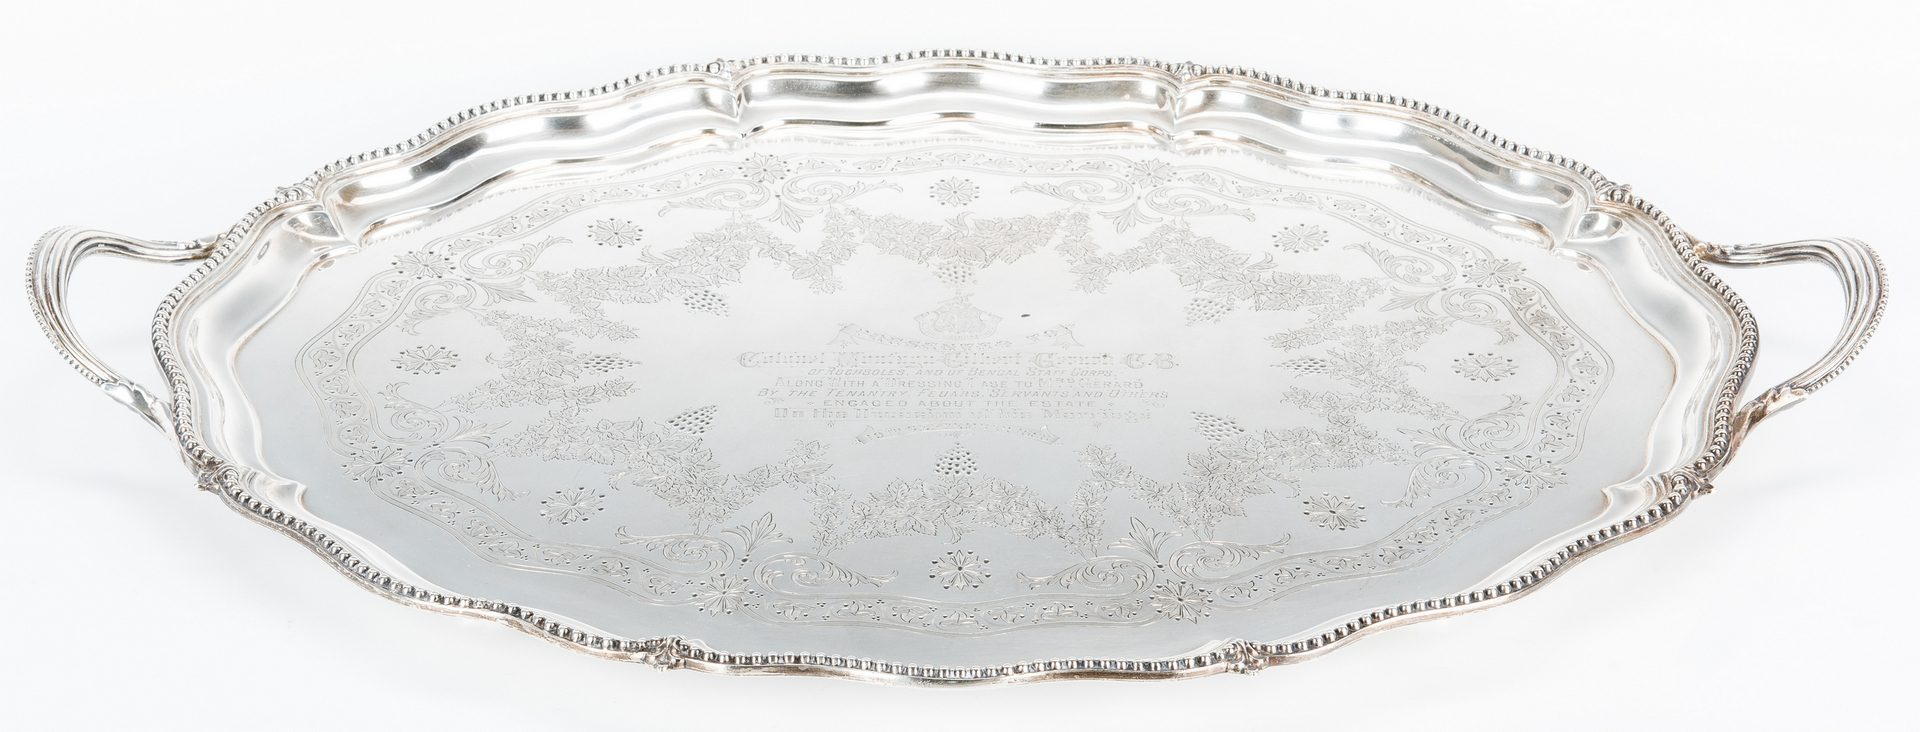 Lot 66: Sterling Presentation Tray to Col. Montagu Gerard